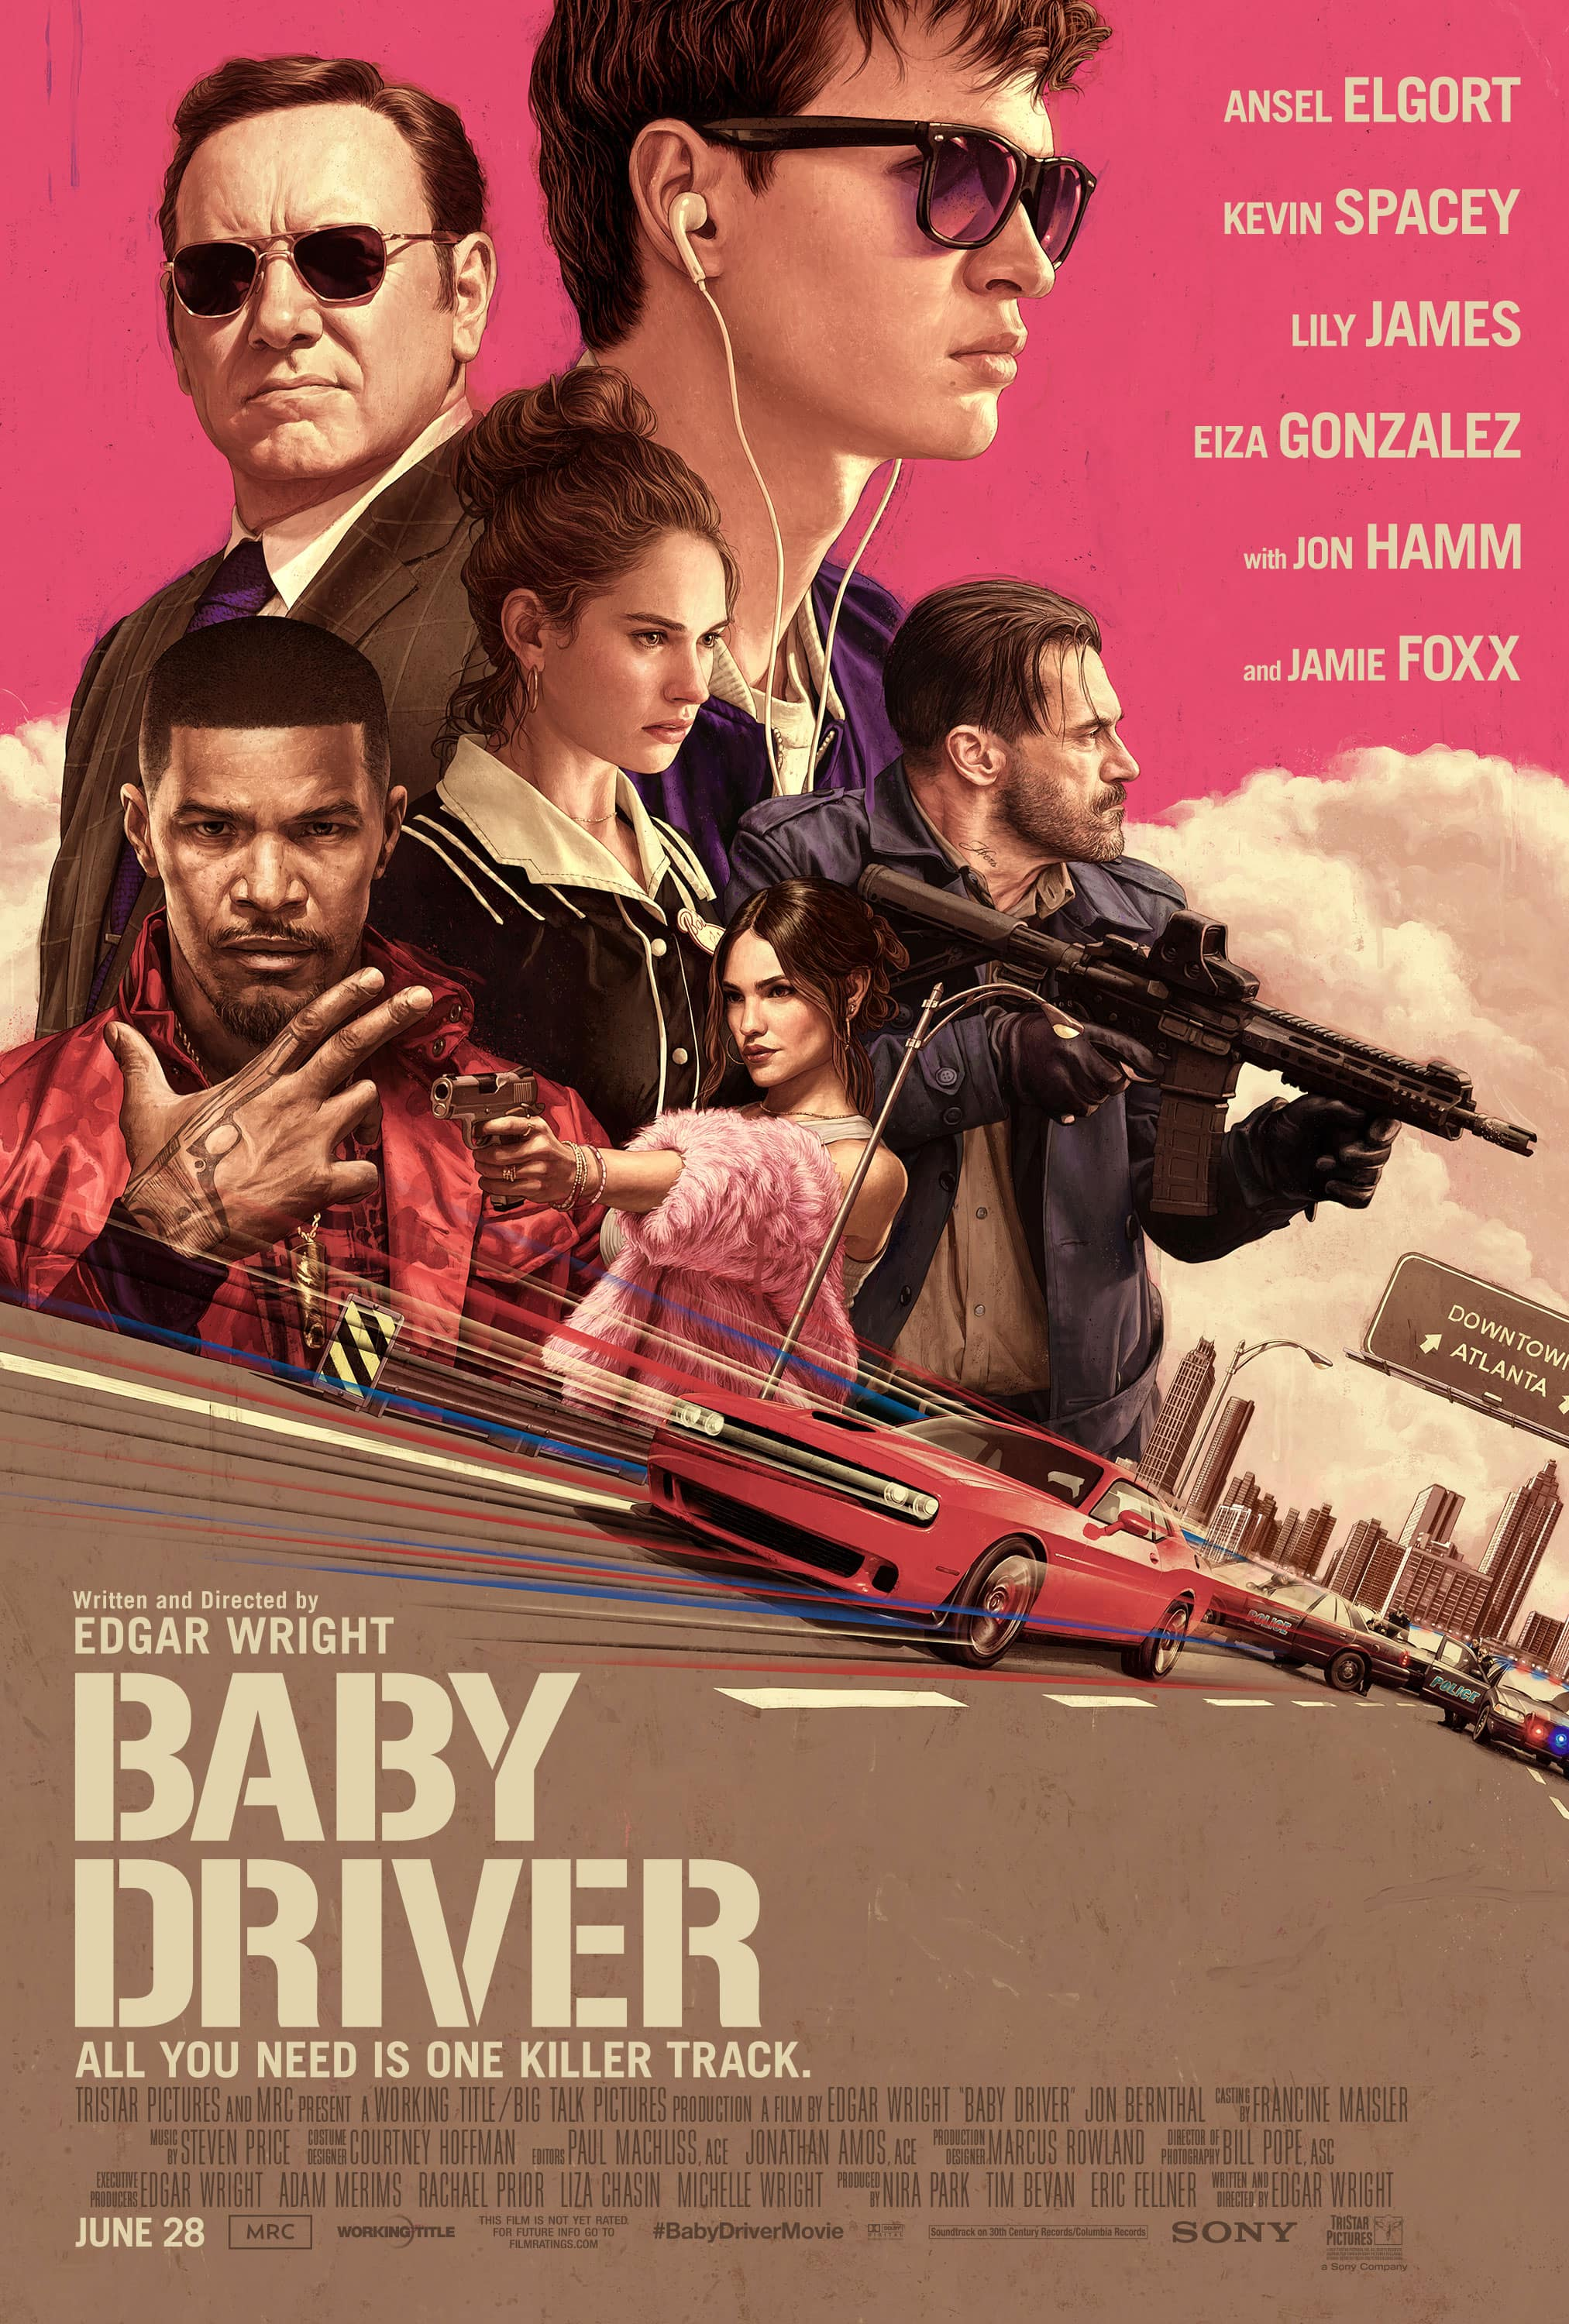 AMC Theatres - Buy a movie ticket to see Baby Driver (8/25 -8/27) & get bonus movie download of the film ($15 value)